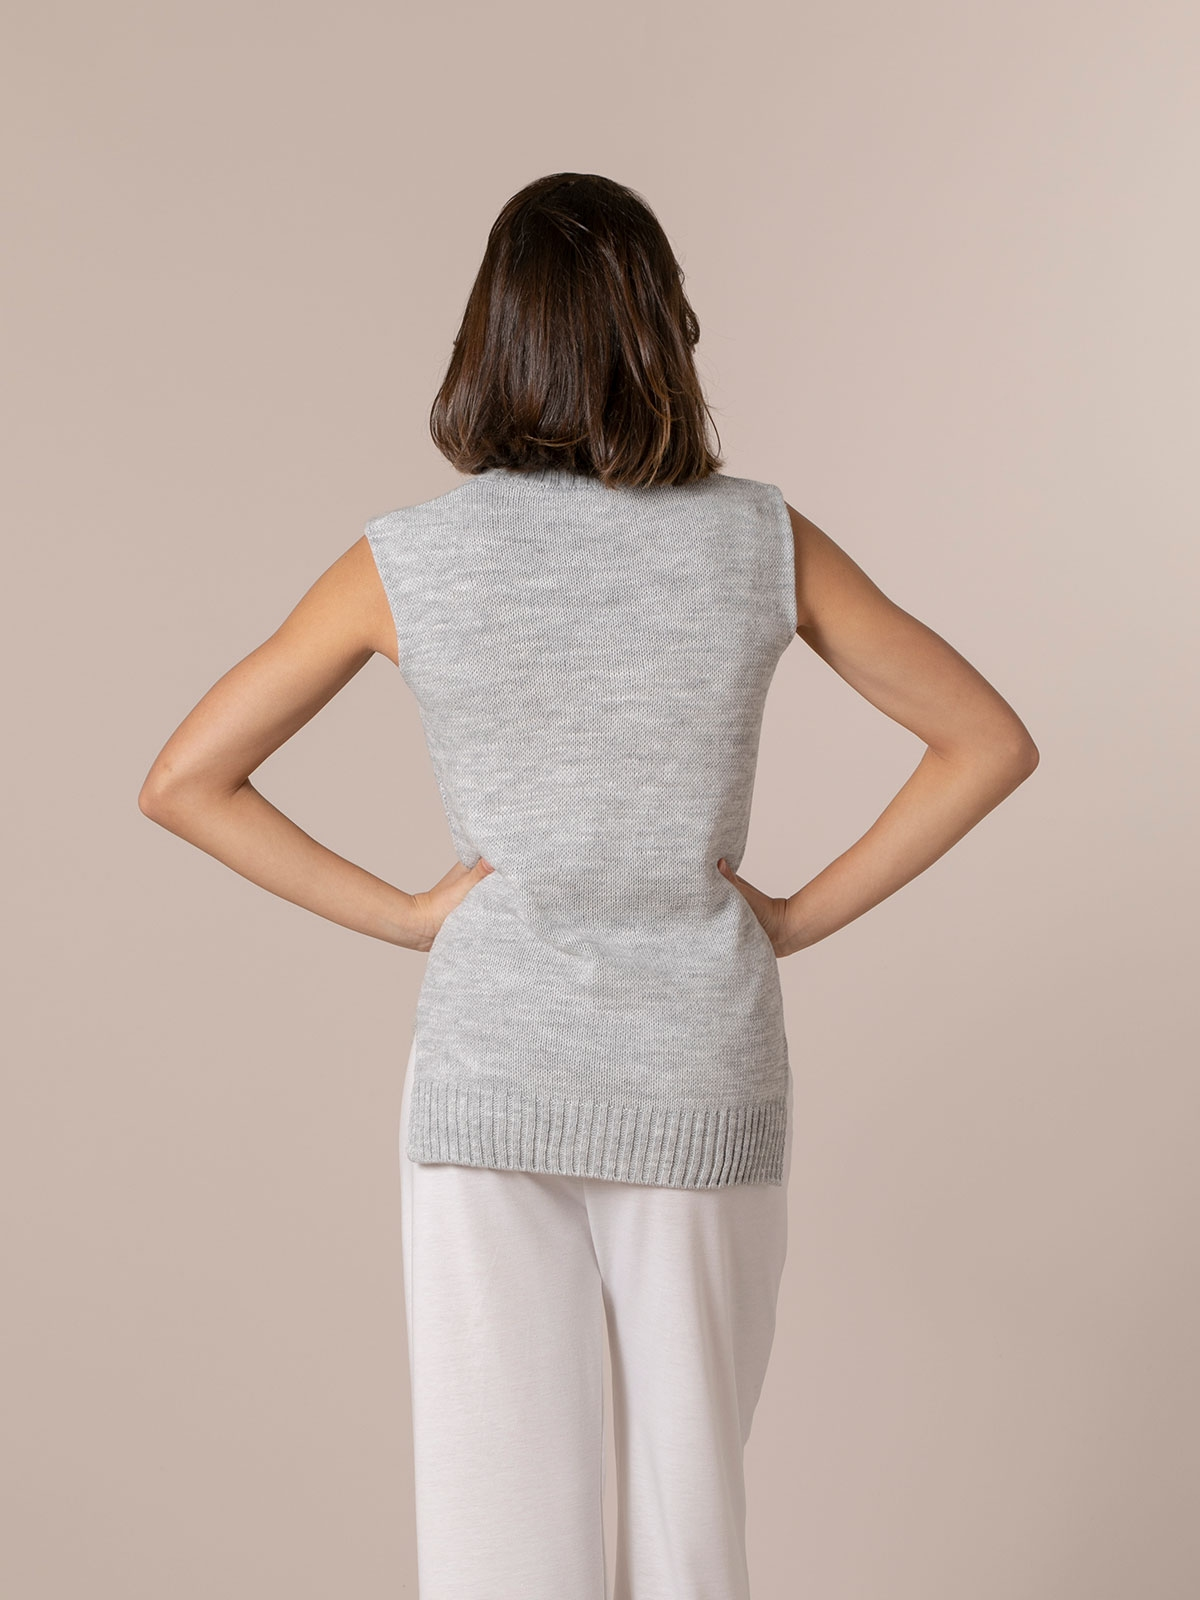 Chaleco mujer punto sport Gris